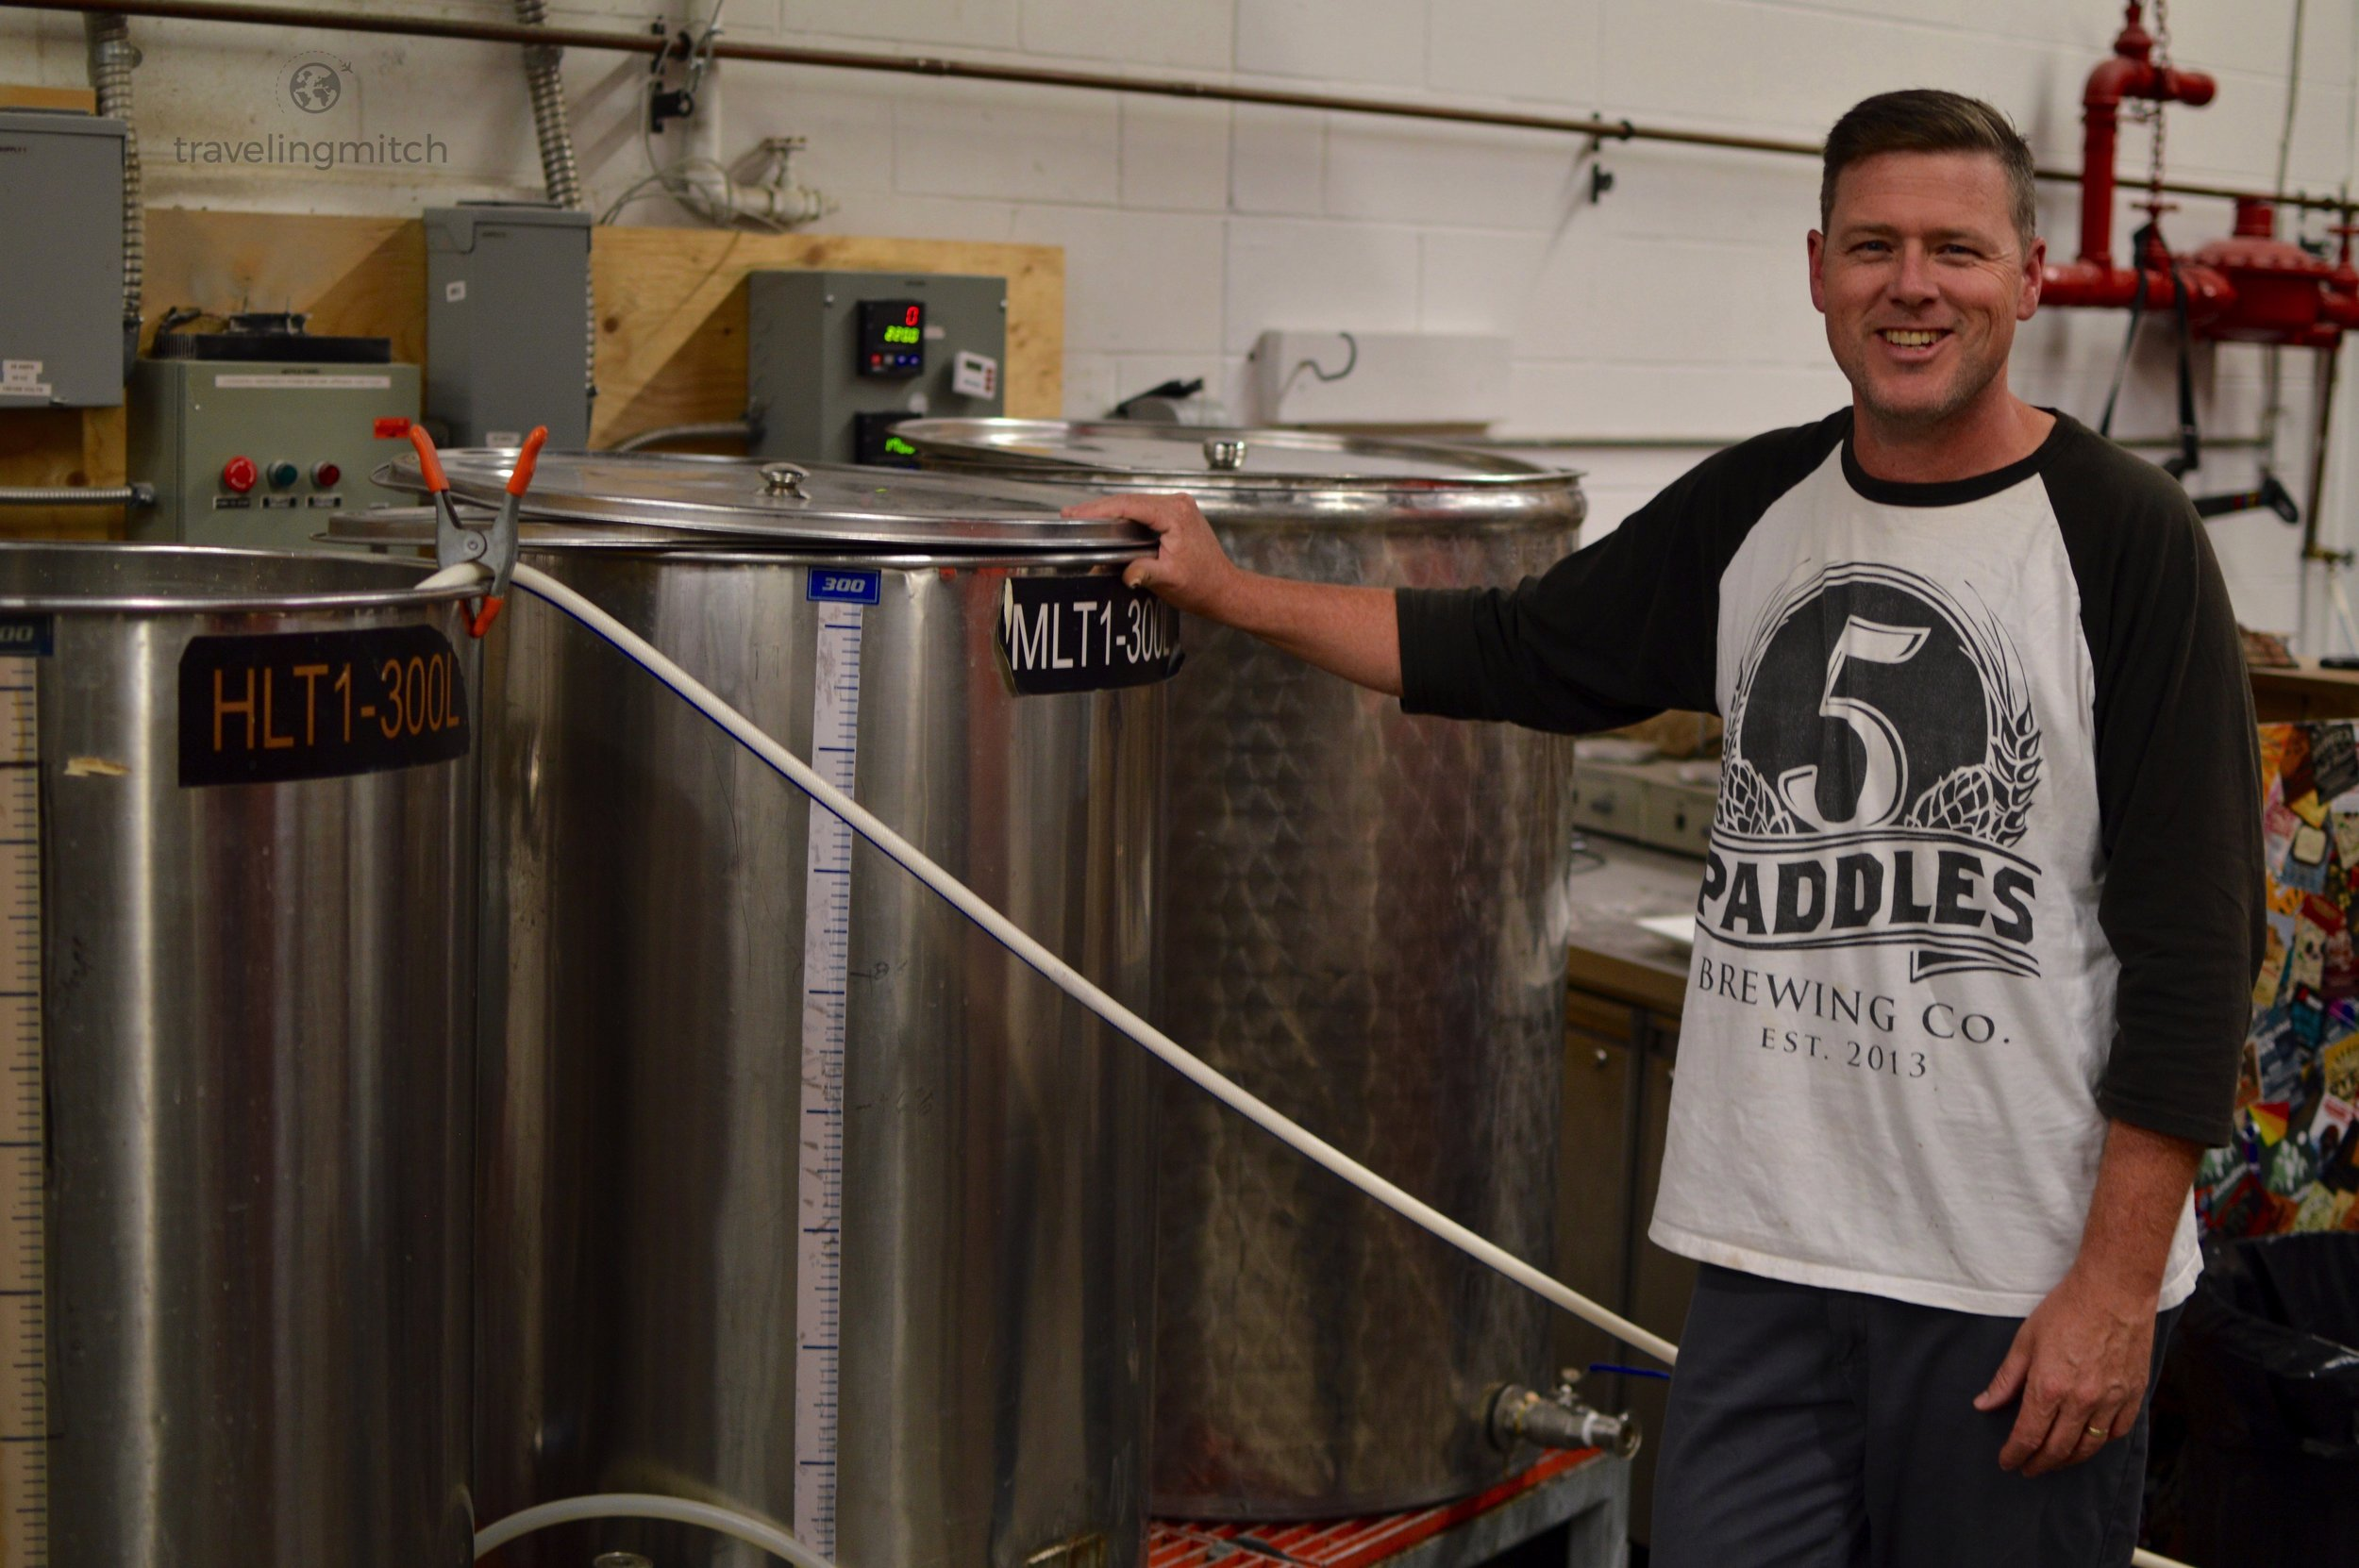 Ian Mills, one of the founders of 5 Paddles Brewing Company in Whitby